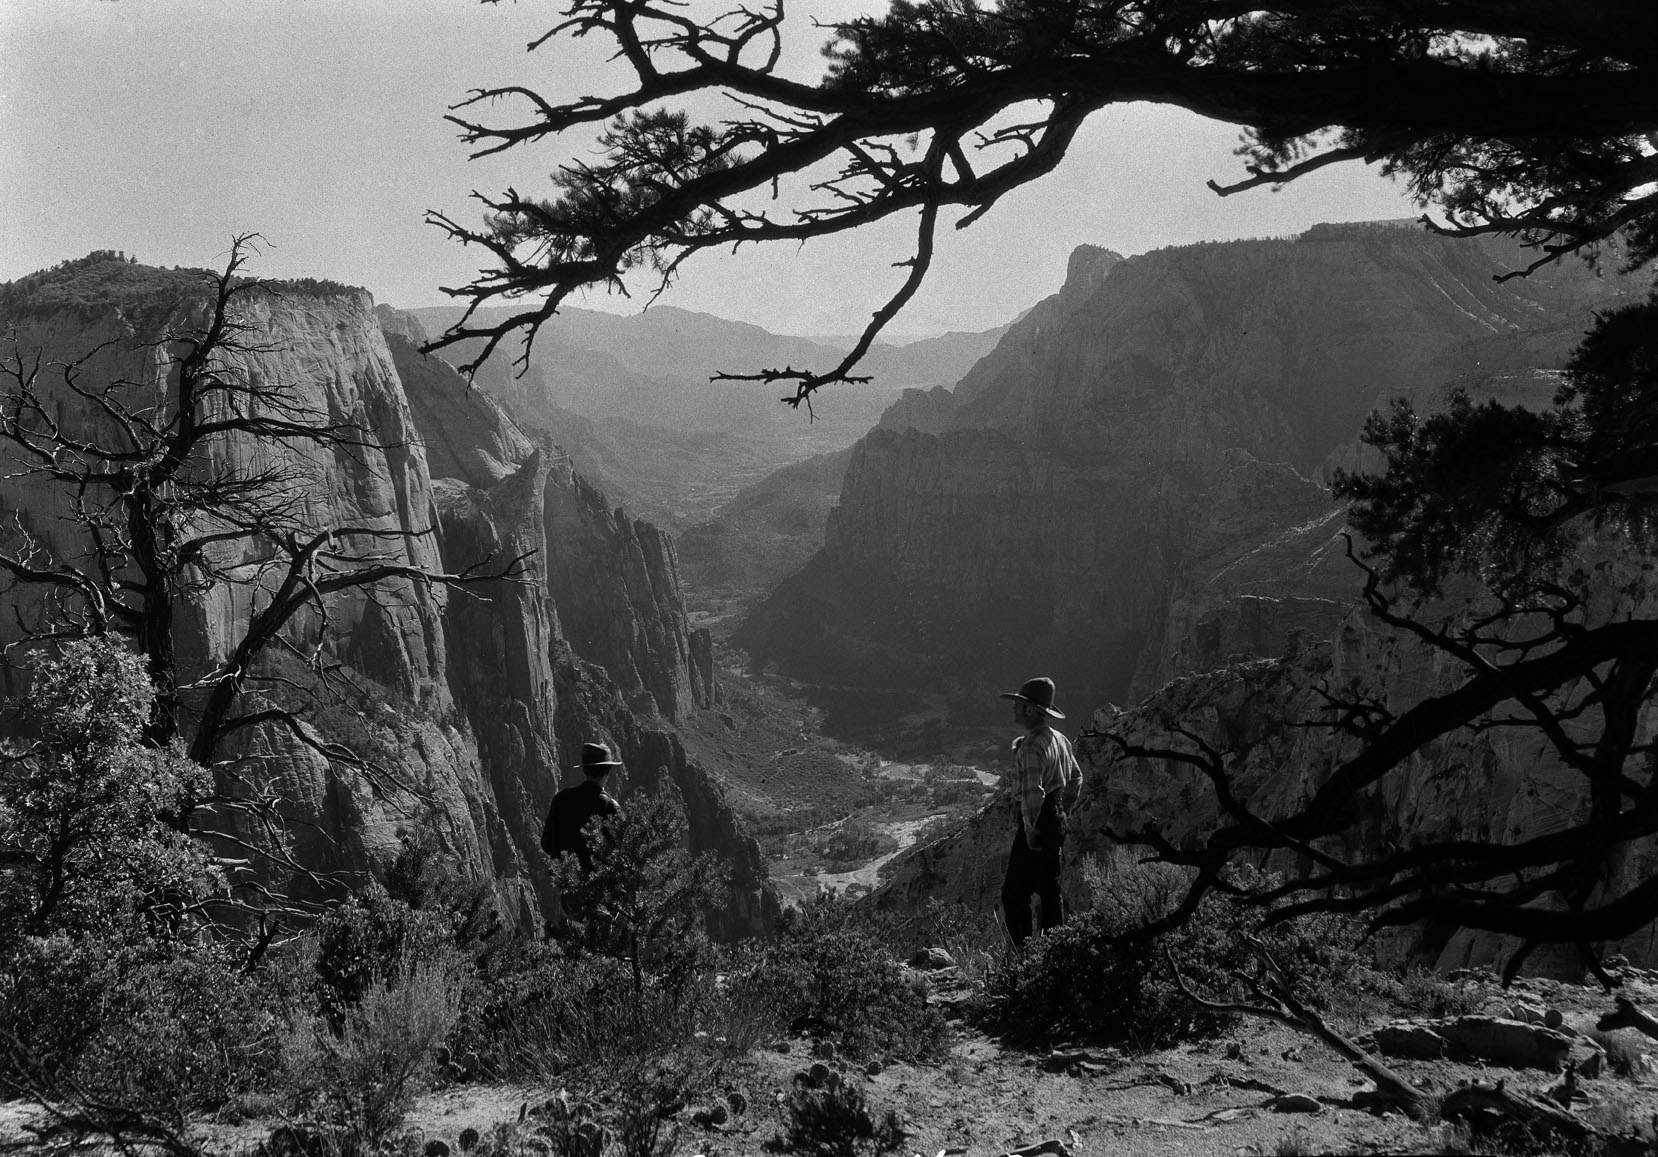 Photo taken in late 1800's of two men over-looking Zion Canyon.